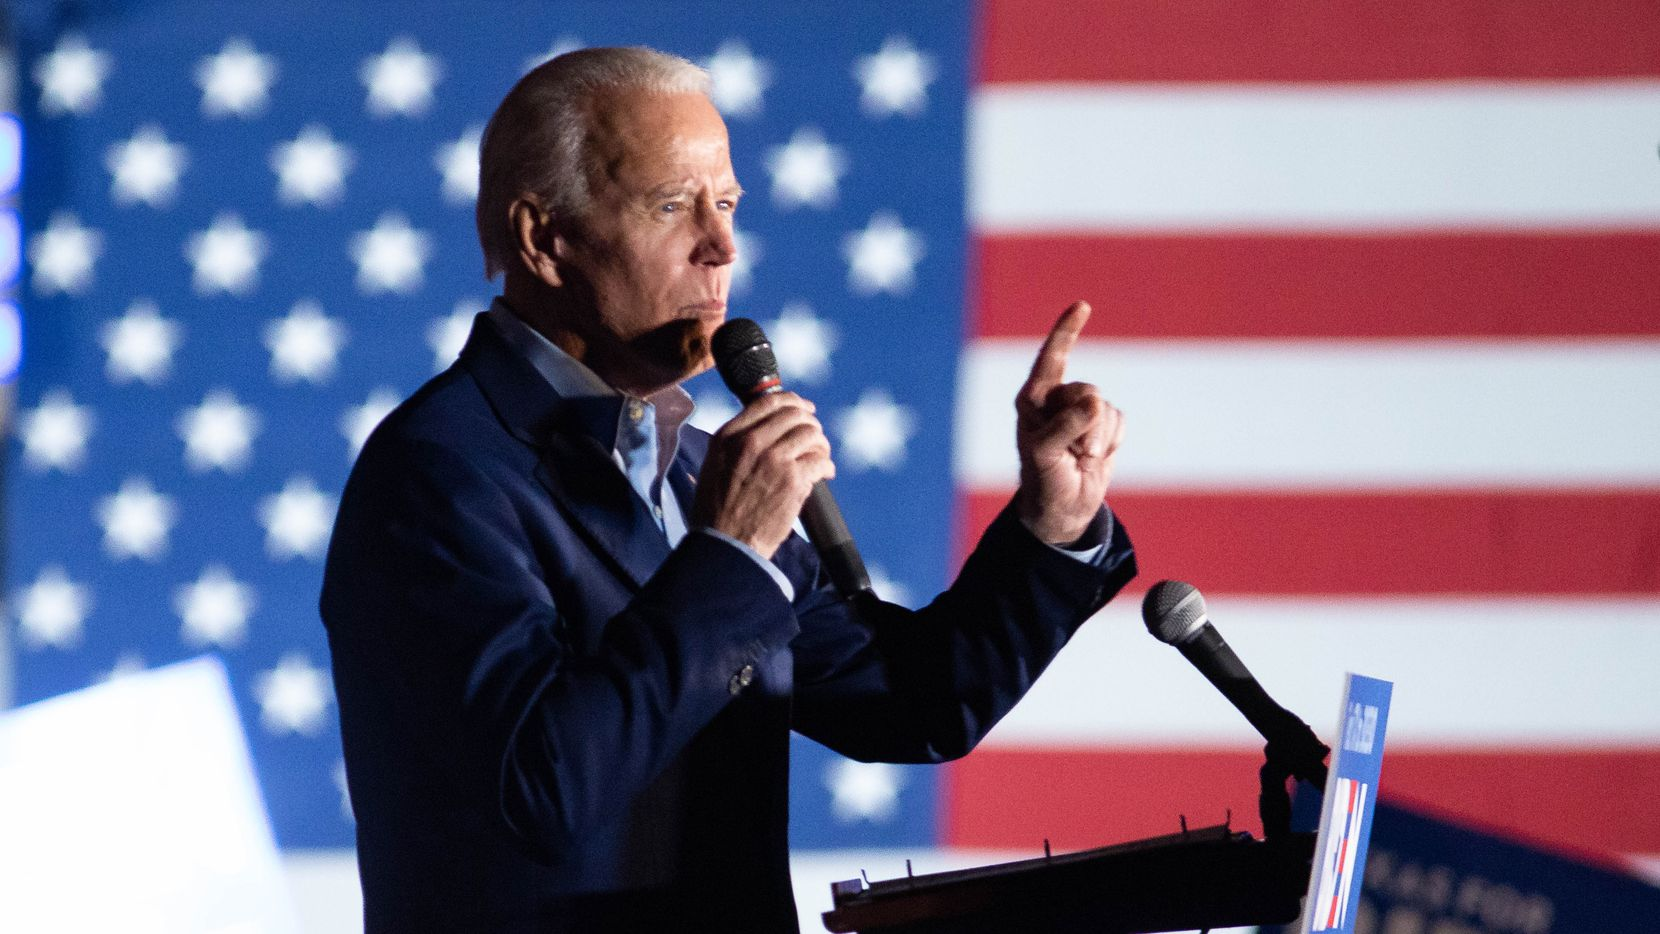 Democratic presidential candidate Joe Biden spoke during a rally at Gilley's in Dallas on March 2. Biden received endorsements in Dallas that day from Pete Buttigieg, Amy Klobuchar and Beto O'Rourke.